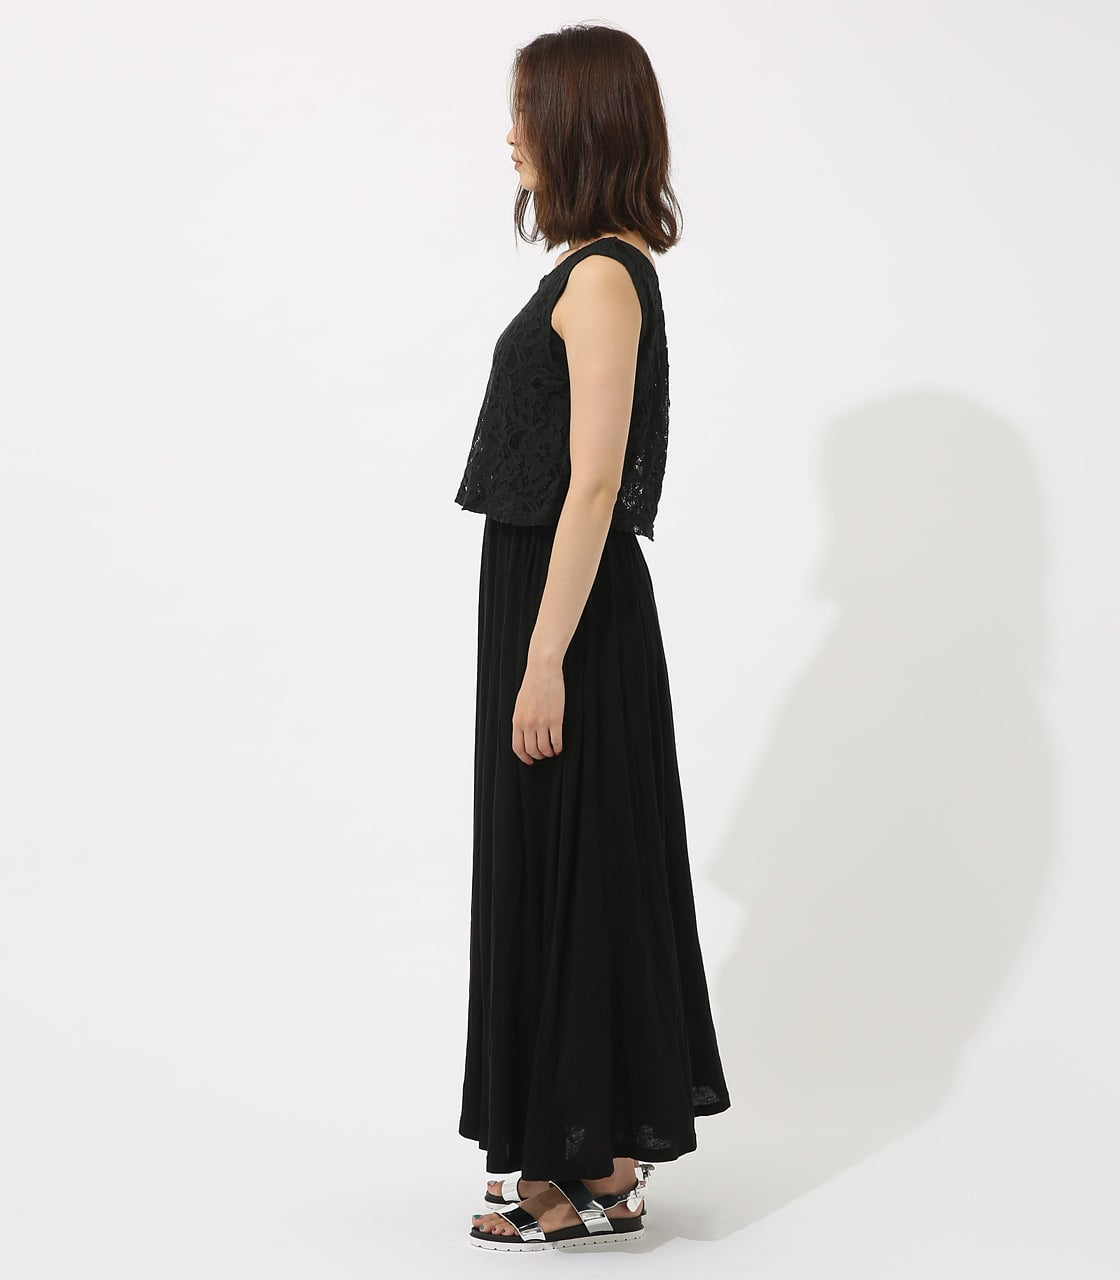 【AZUL BY MOUSSY】レースドッキングワンピース 詳細画像 BLK 6